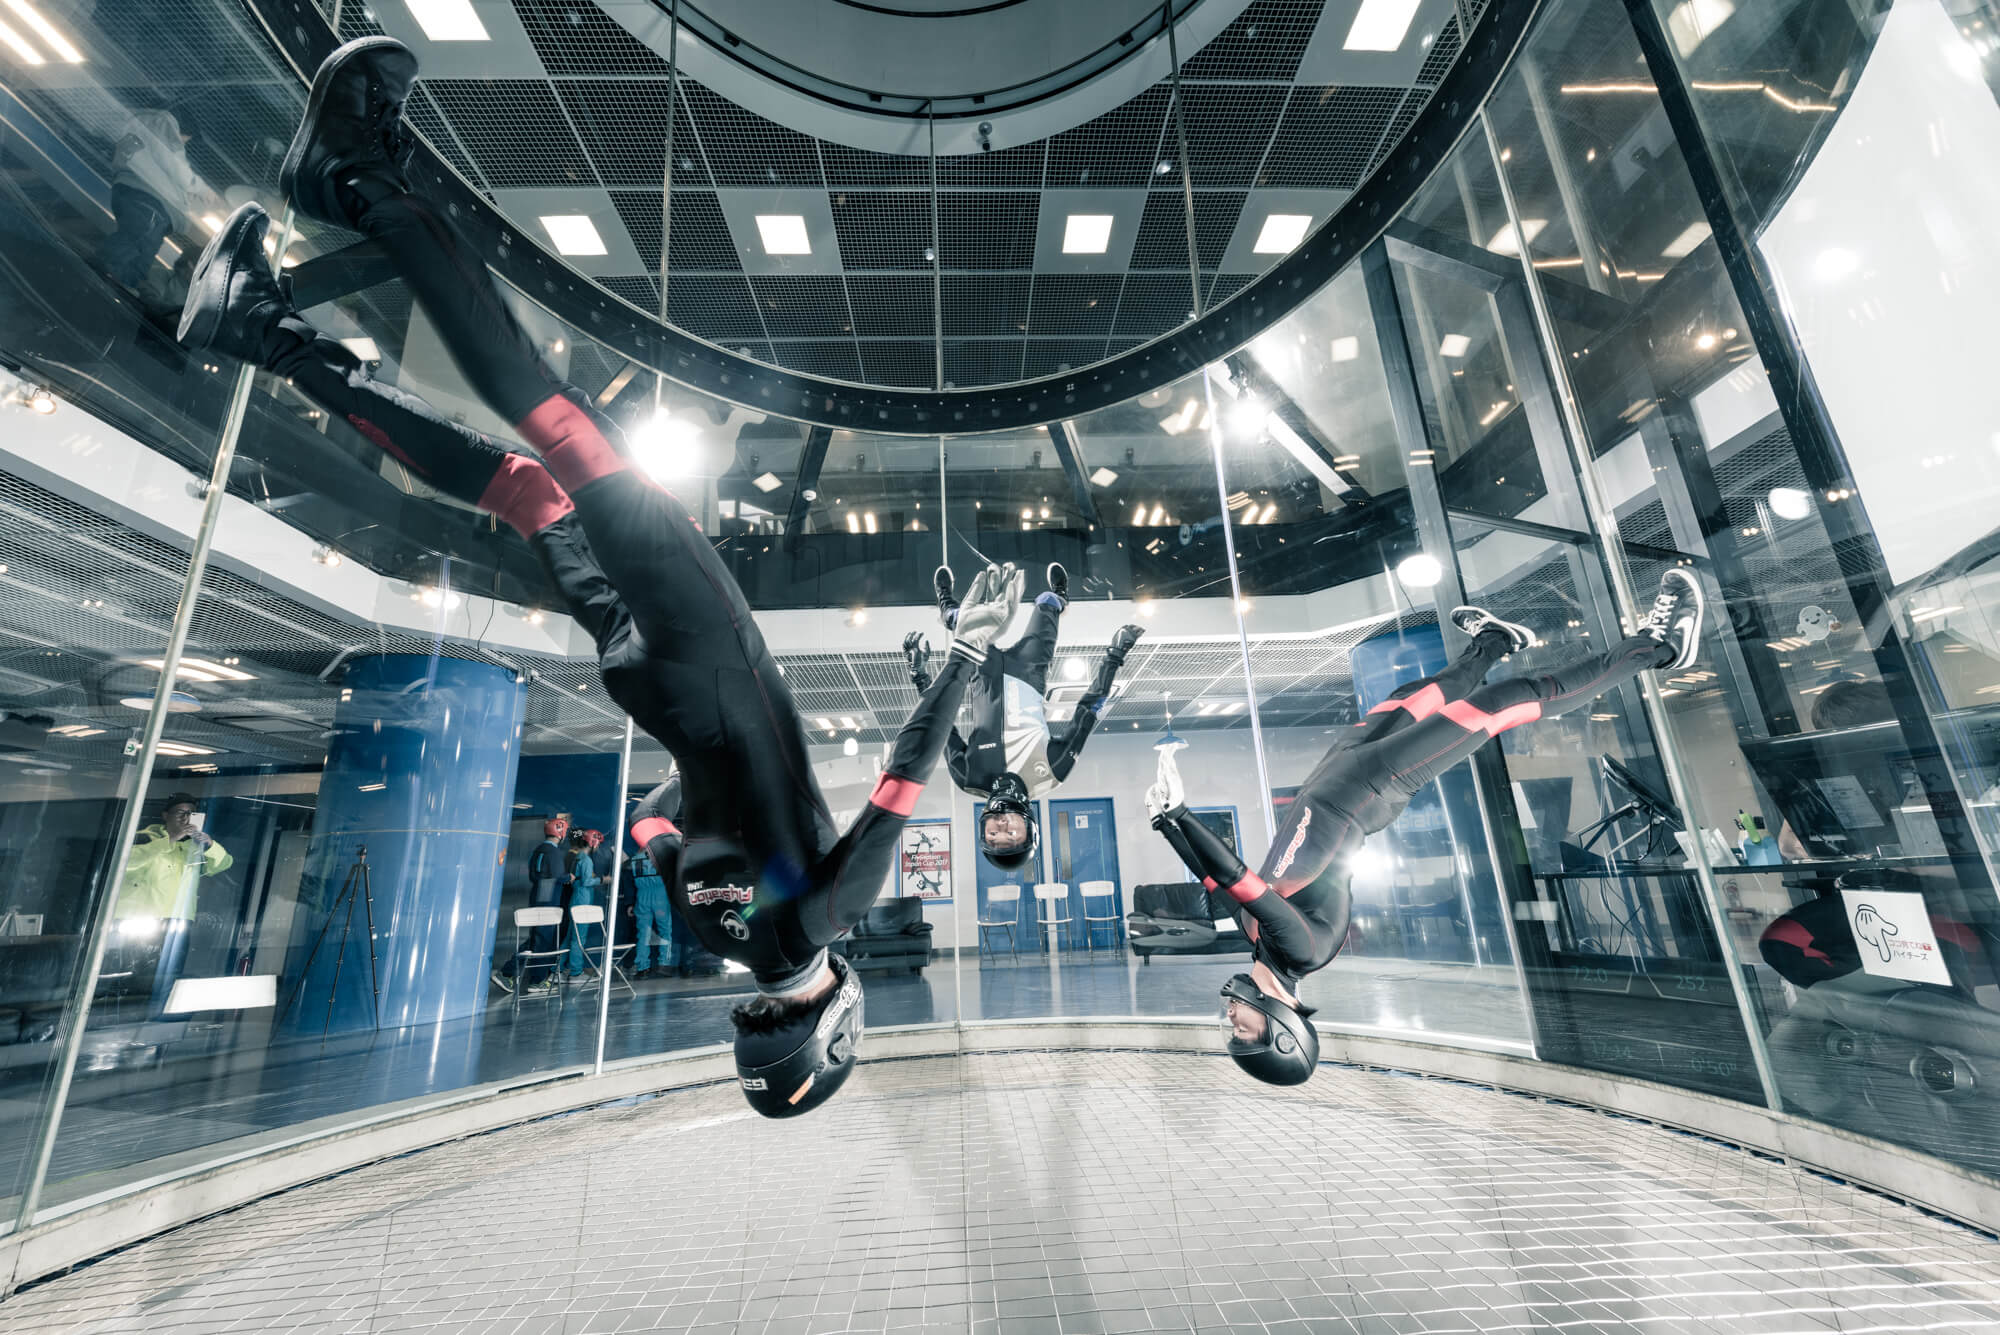 Flying sumo wrestler? The video of indoor skydiving at